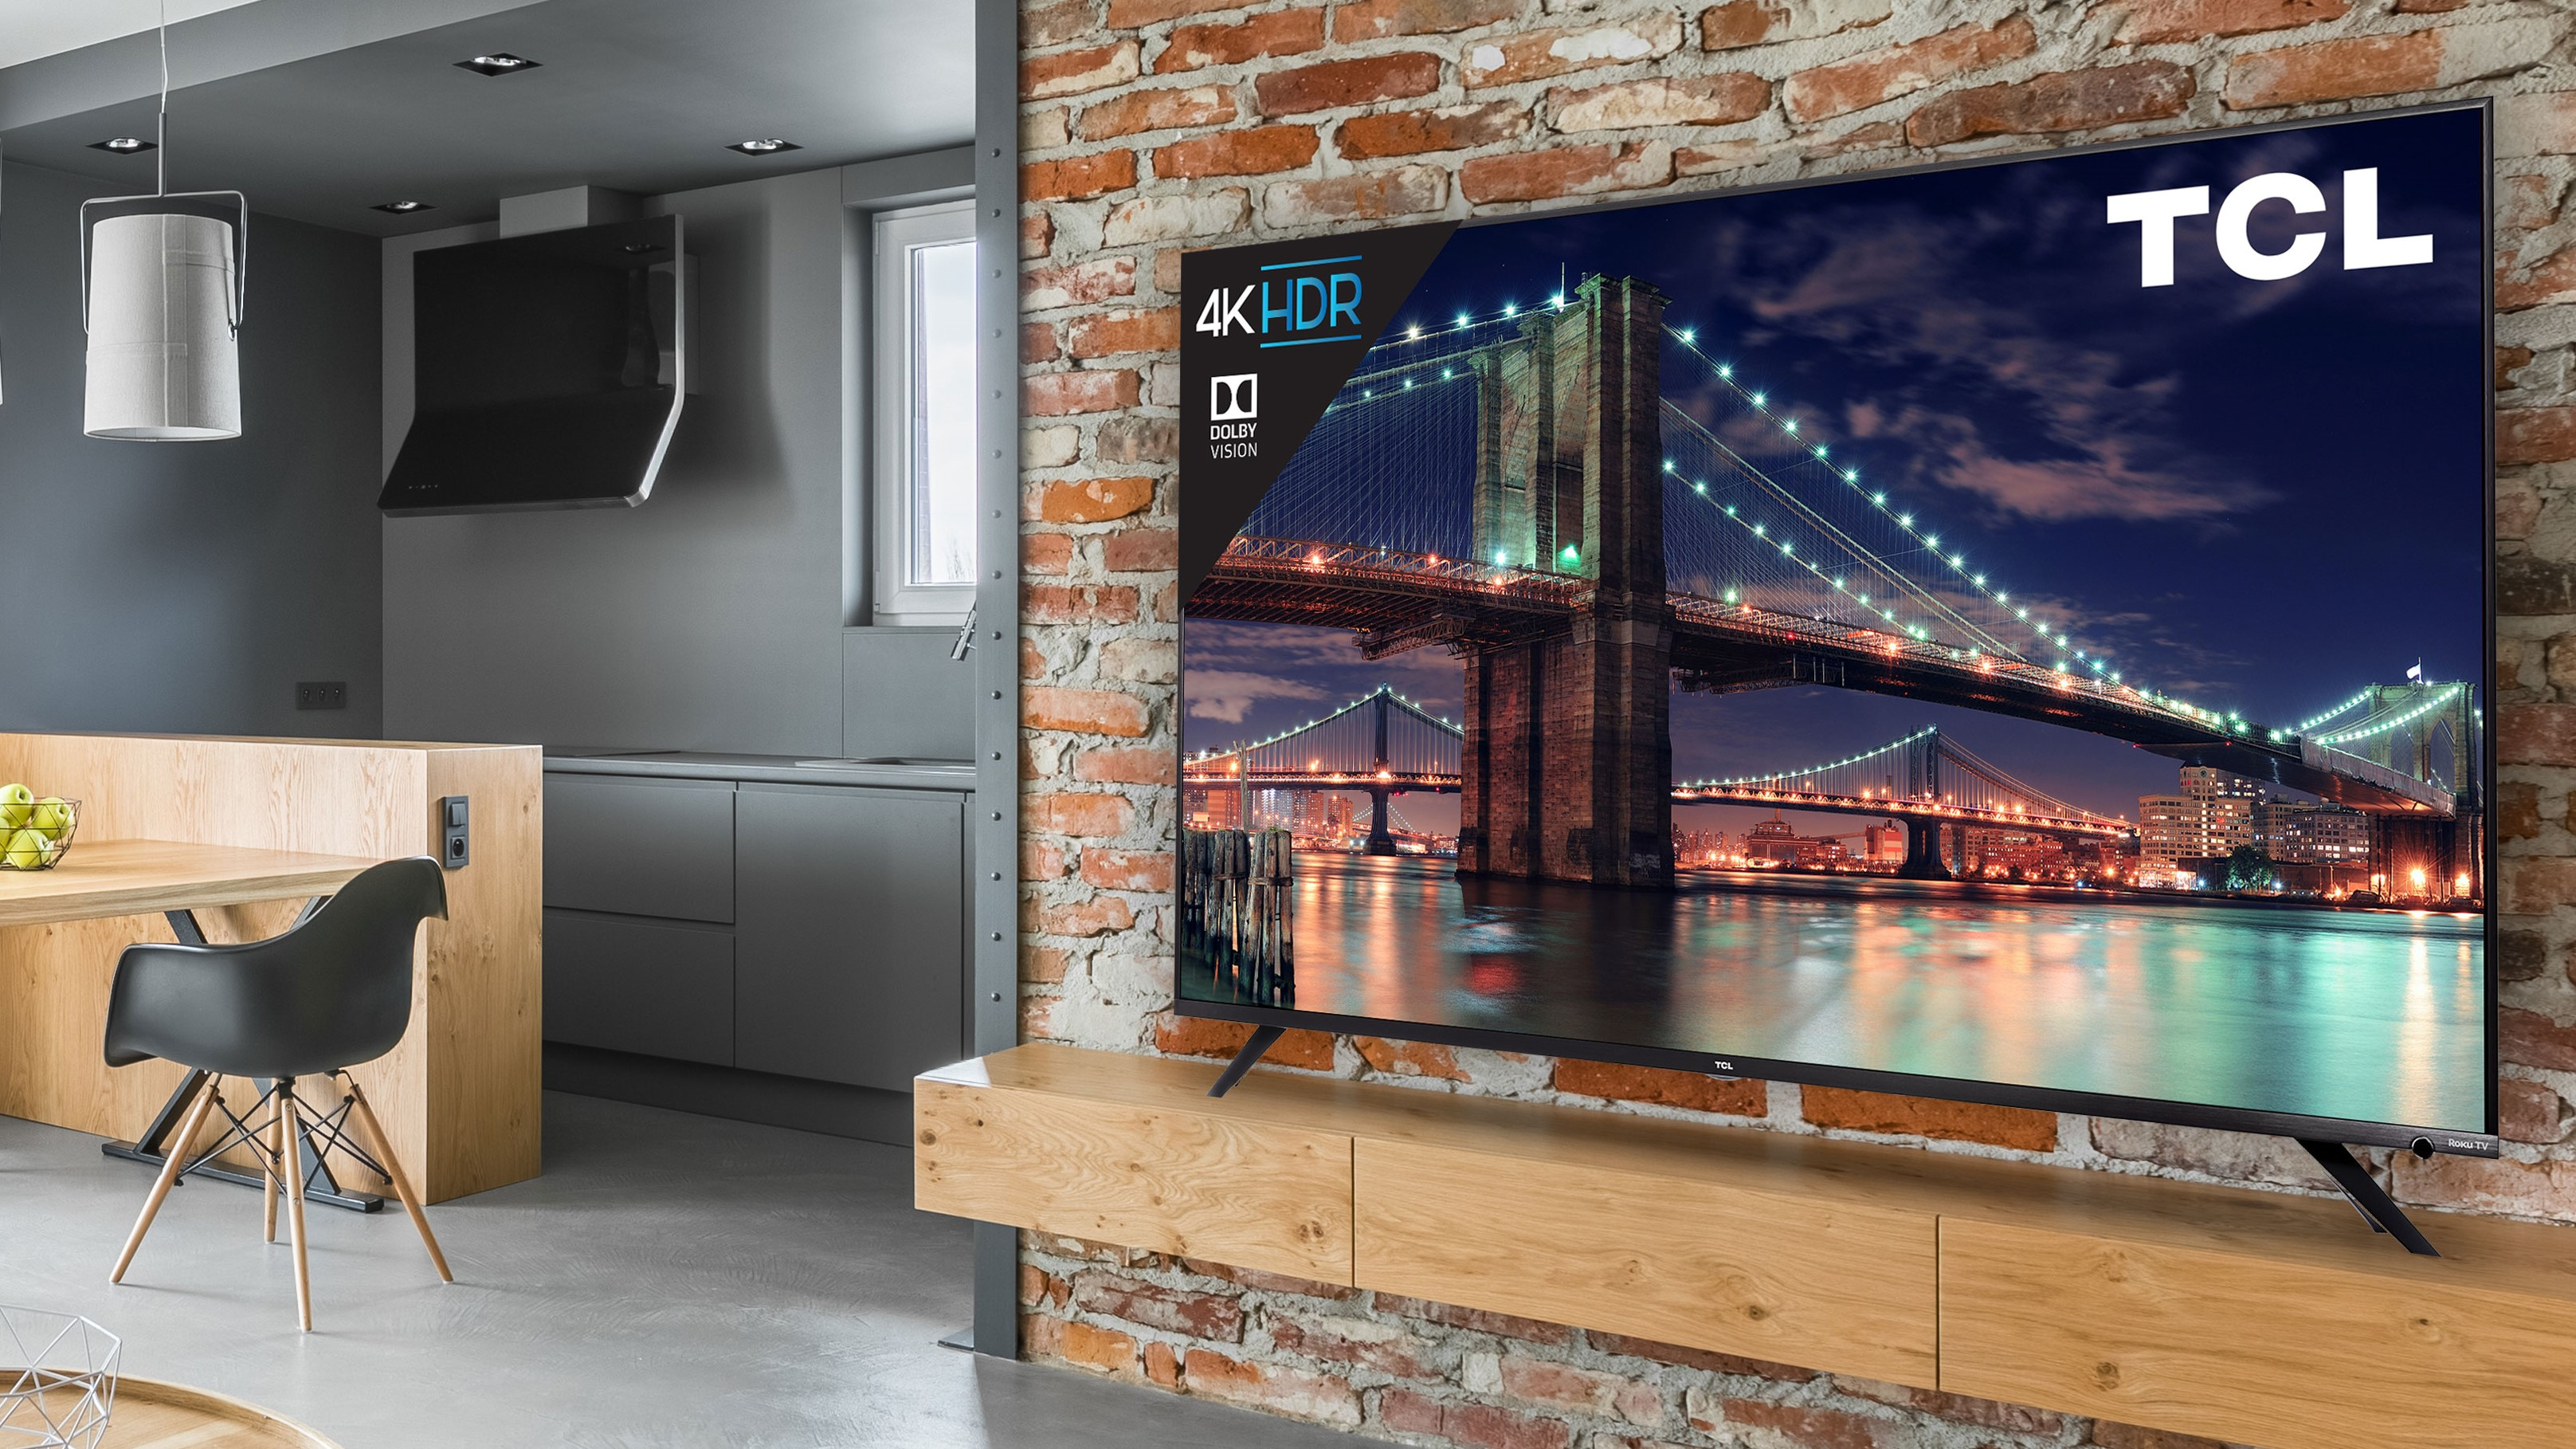 TCL 6-Series (R615, R617) (2018)